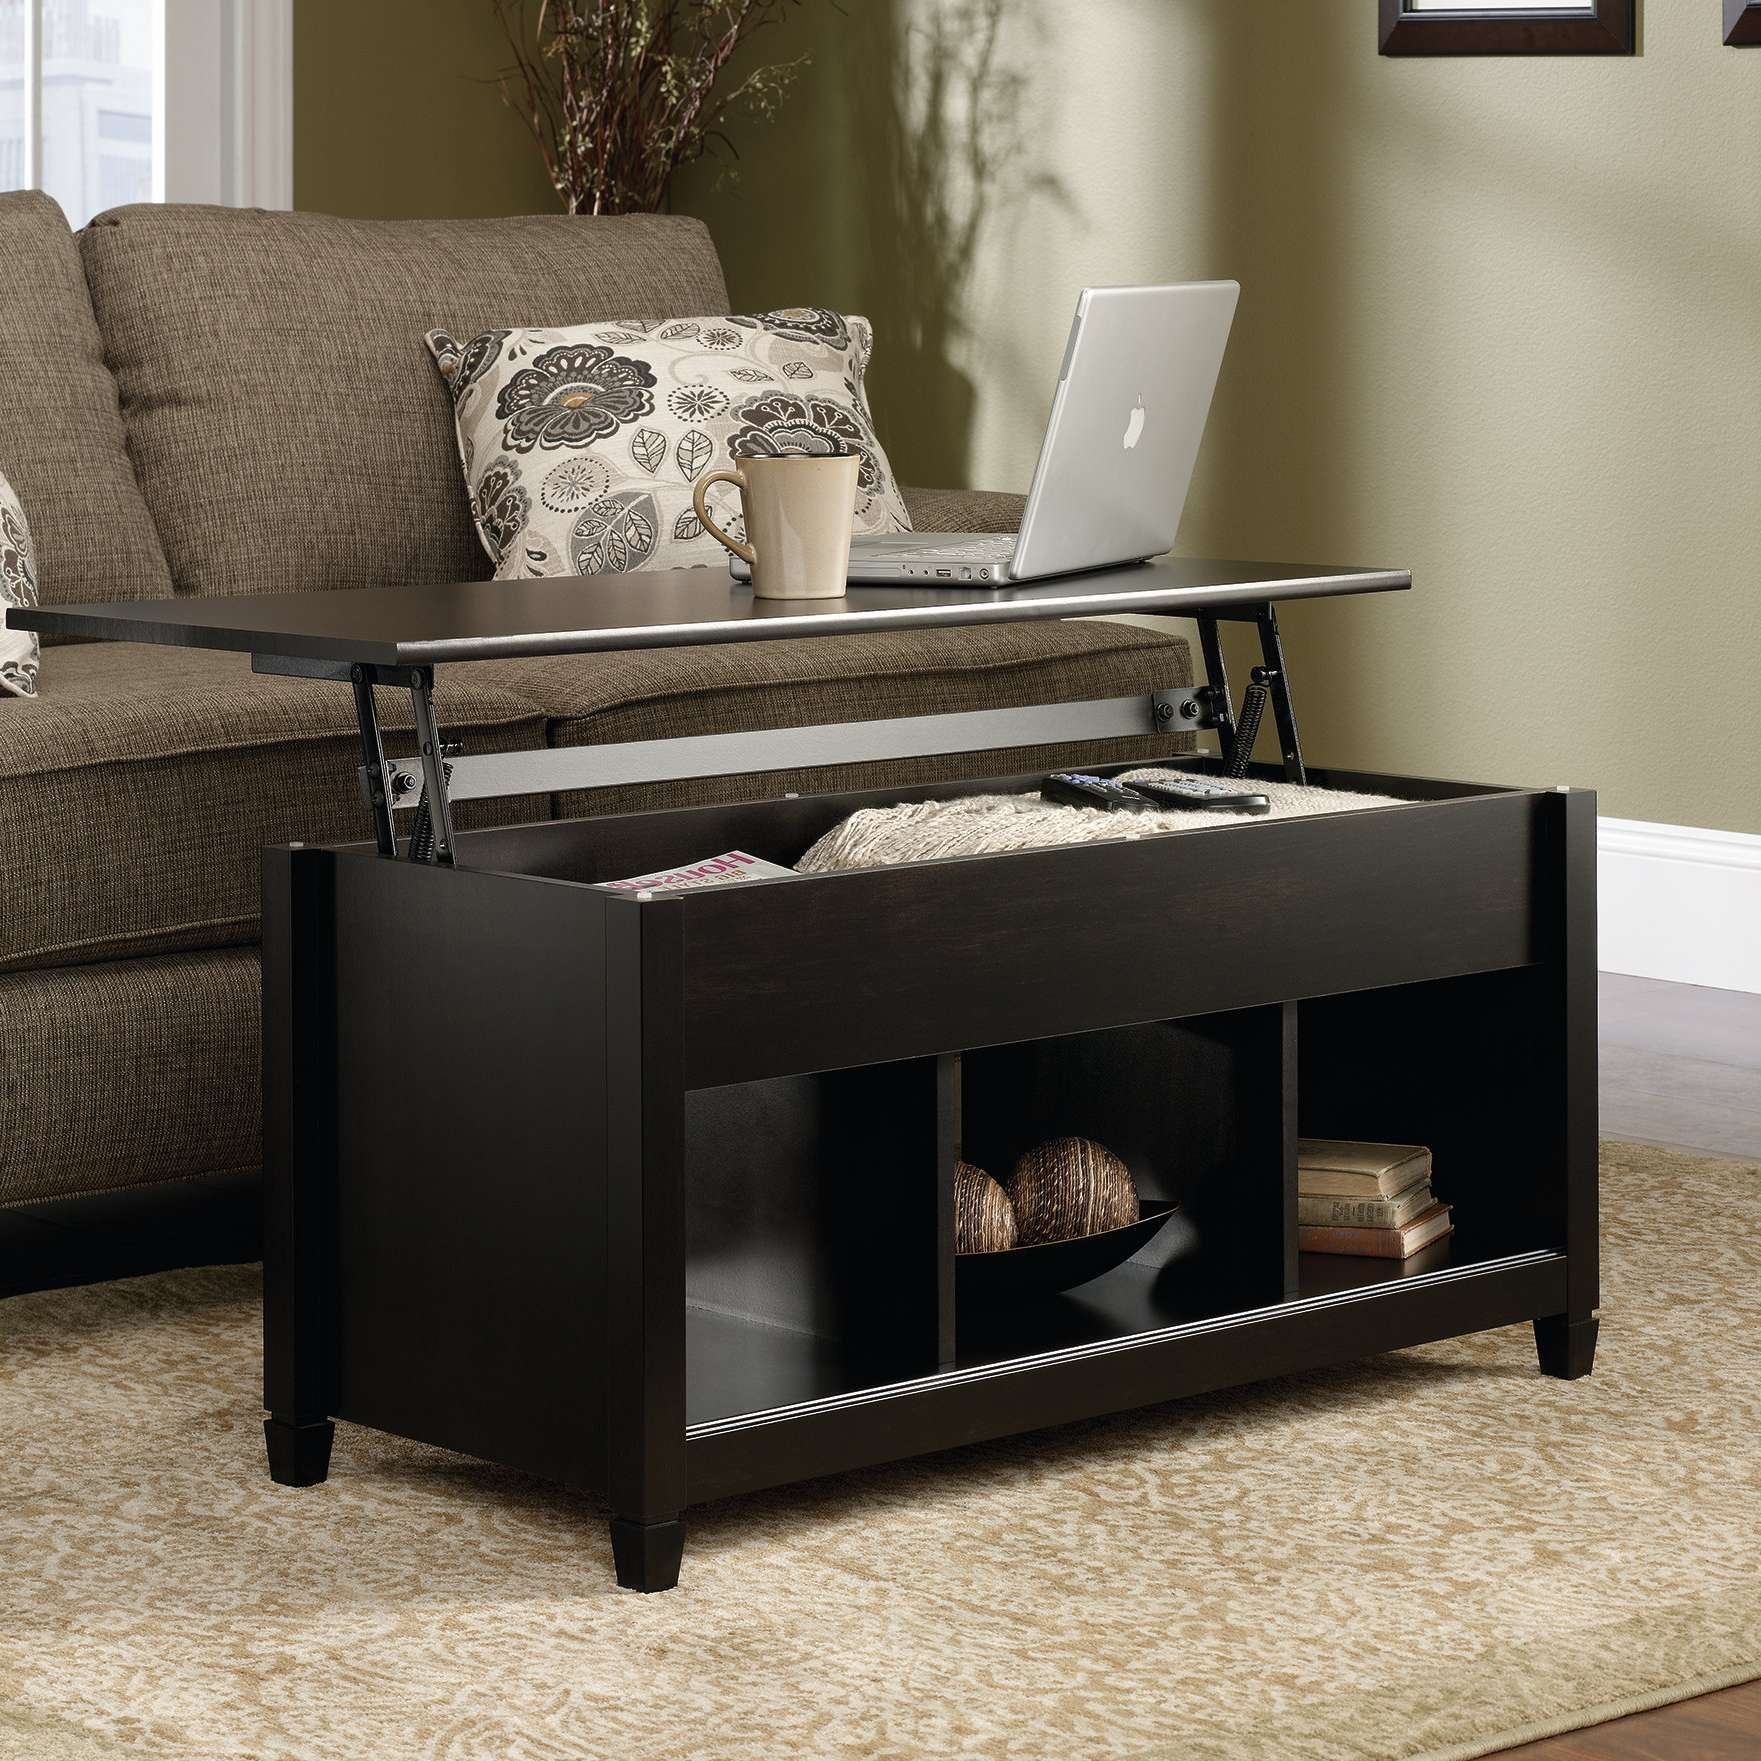 Most Up To Date Coffee Tables With Lift Up Top Within Lift Top Coffee Tables You'll Love (View 11 of 20)